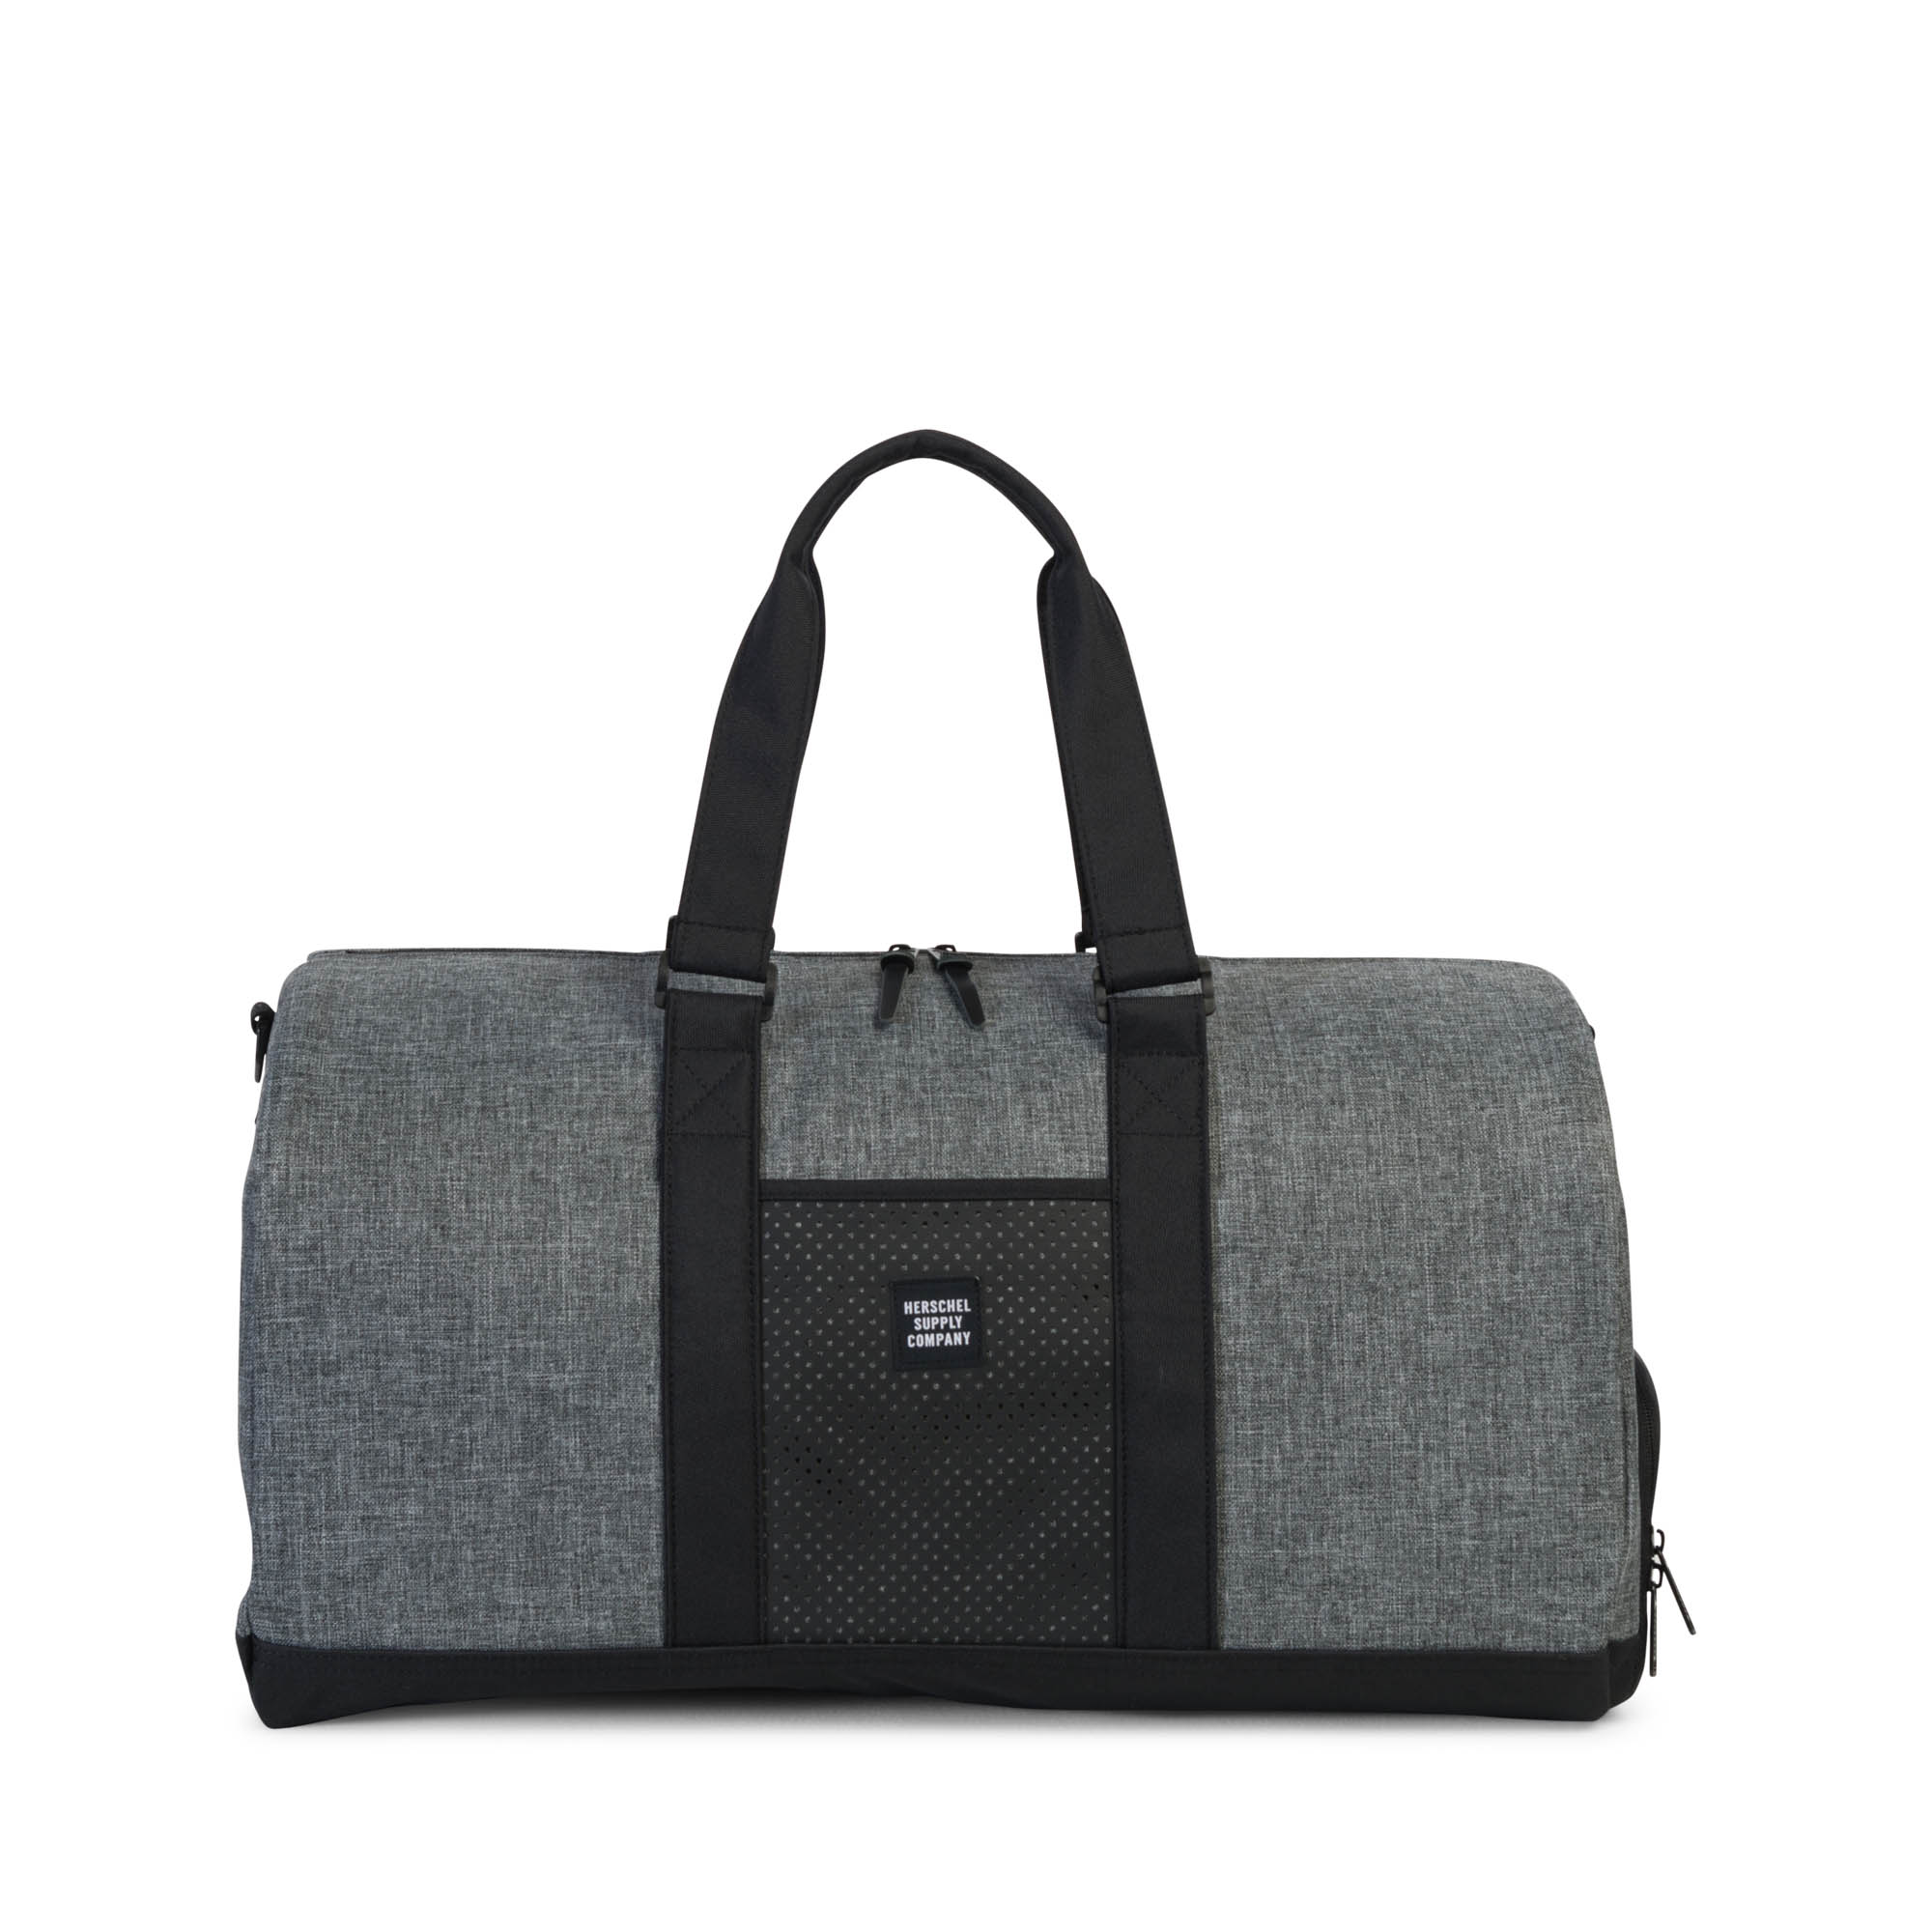 Herschel Travel Duffle Dark Shadow/Black Synthetic Leather taille unique 0IhU1FH